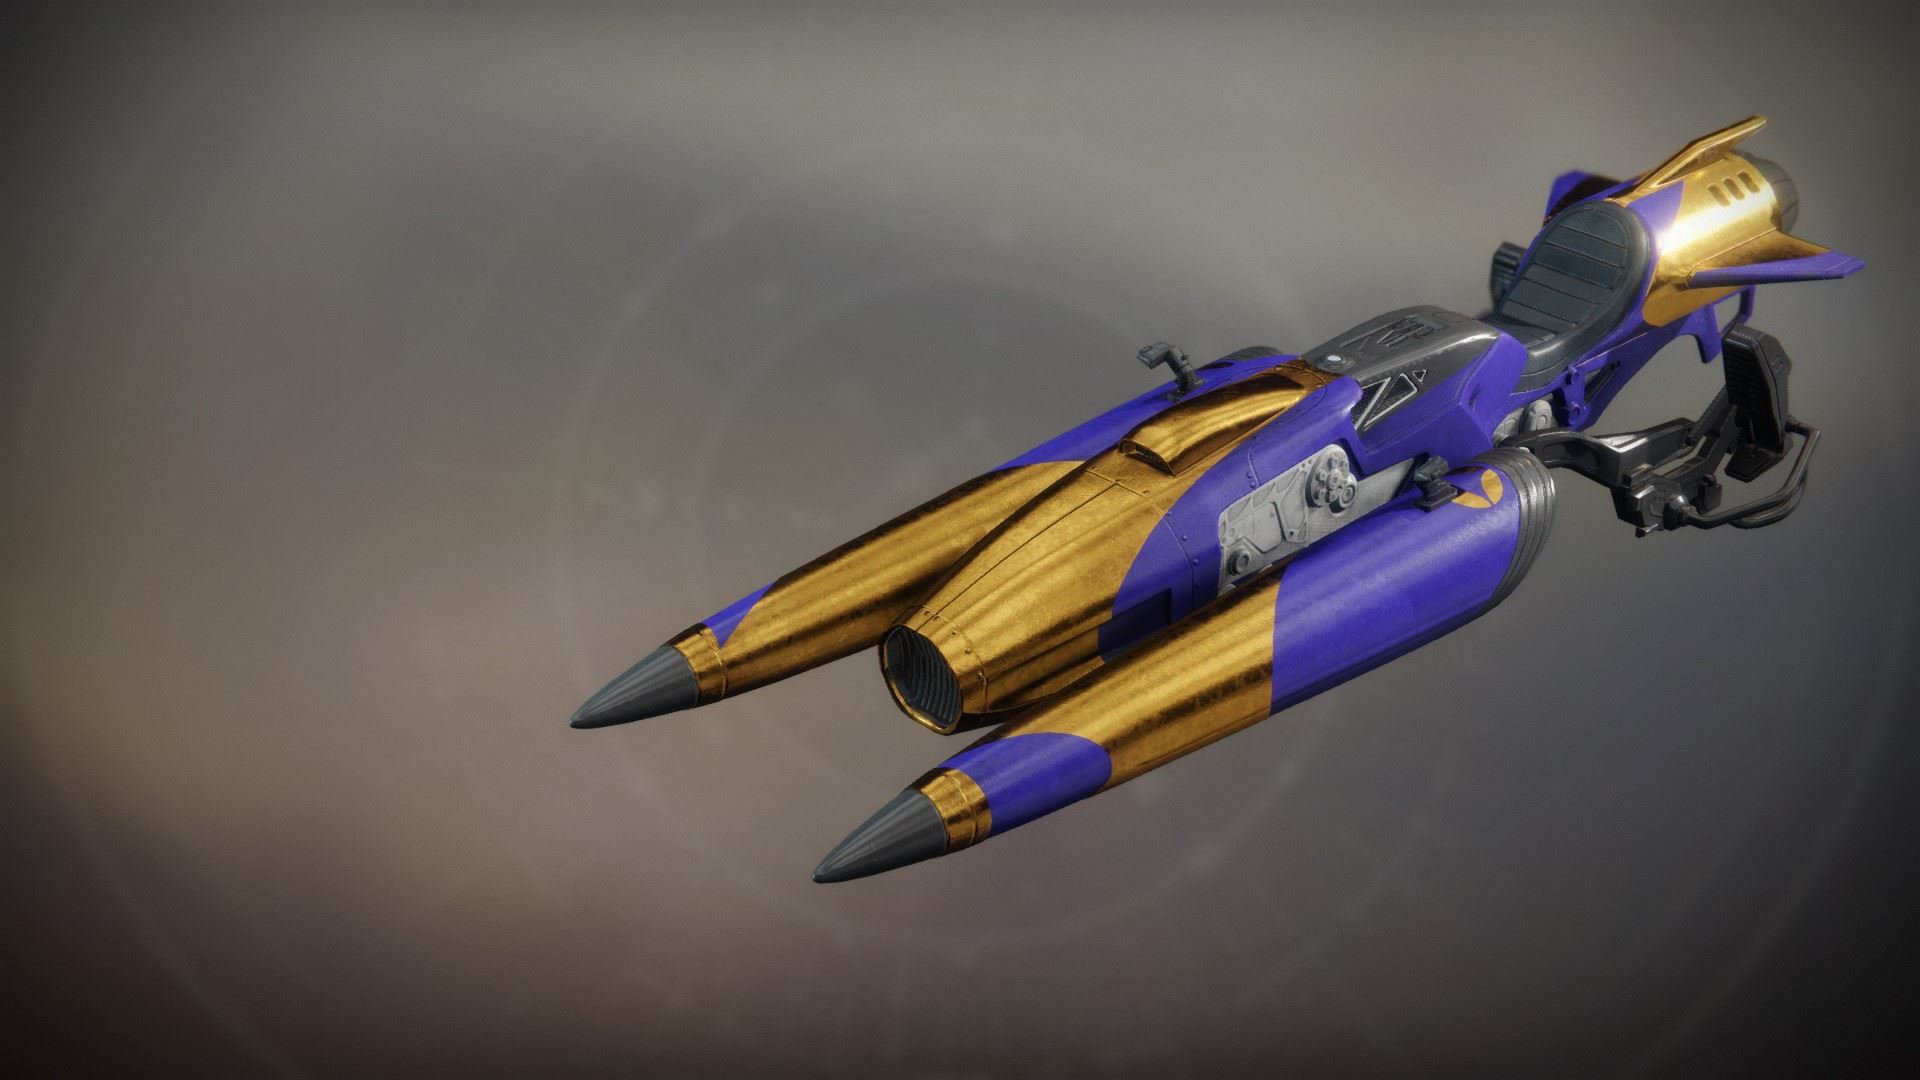 An in-game render of the G-008 Ziphopper.